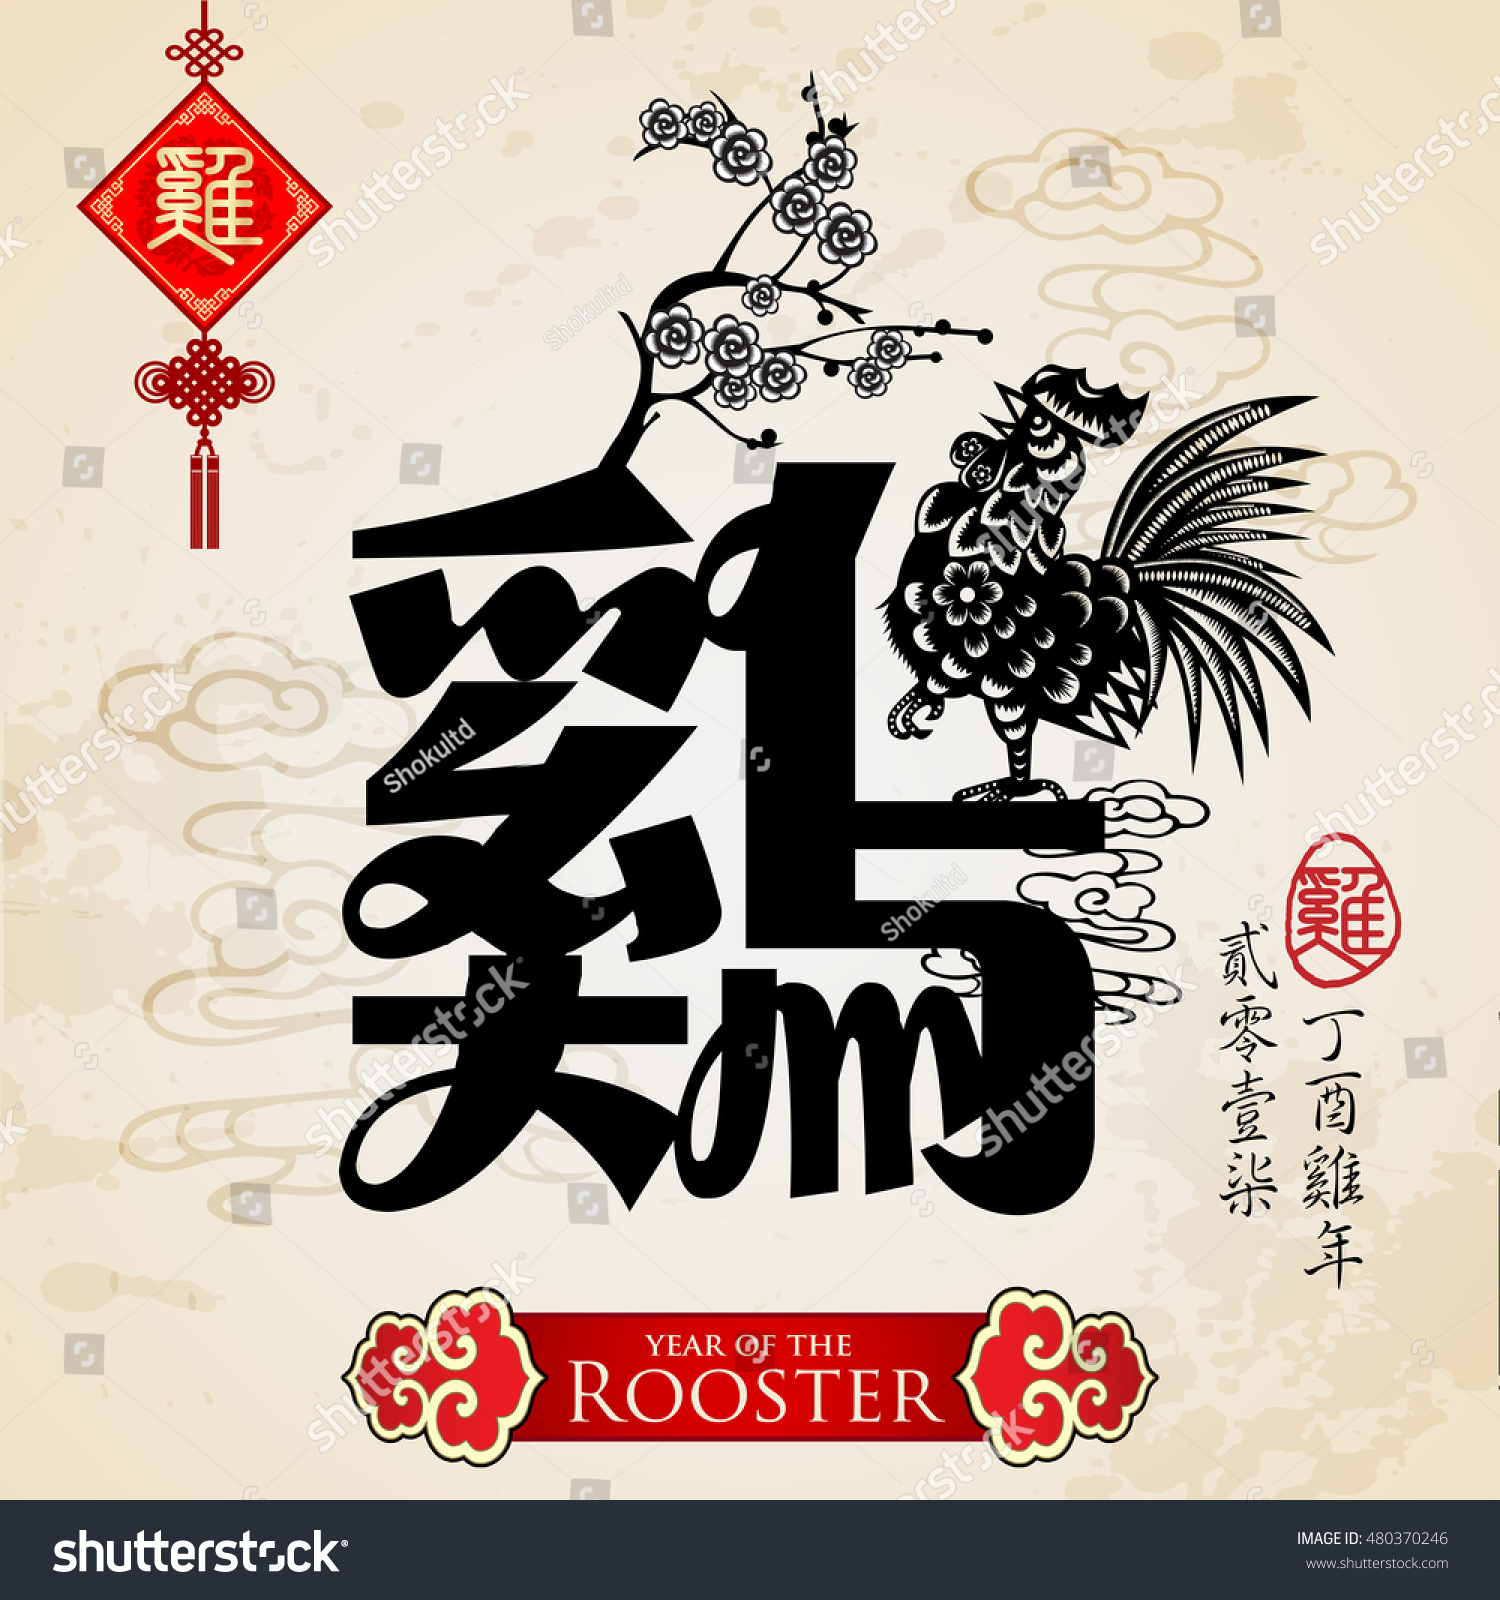 Chinese zodiac rooster calligraphy designtranslation small